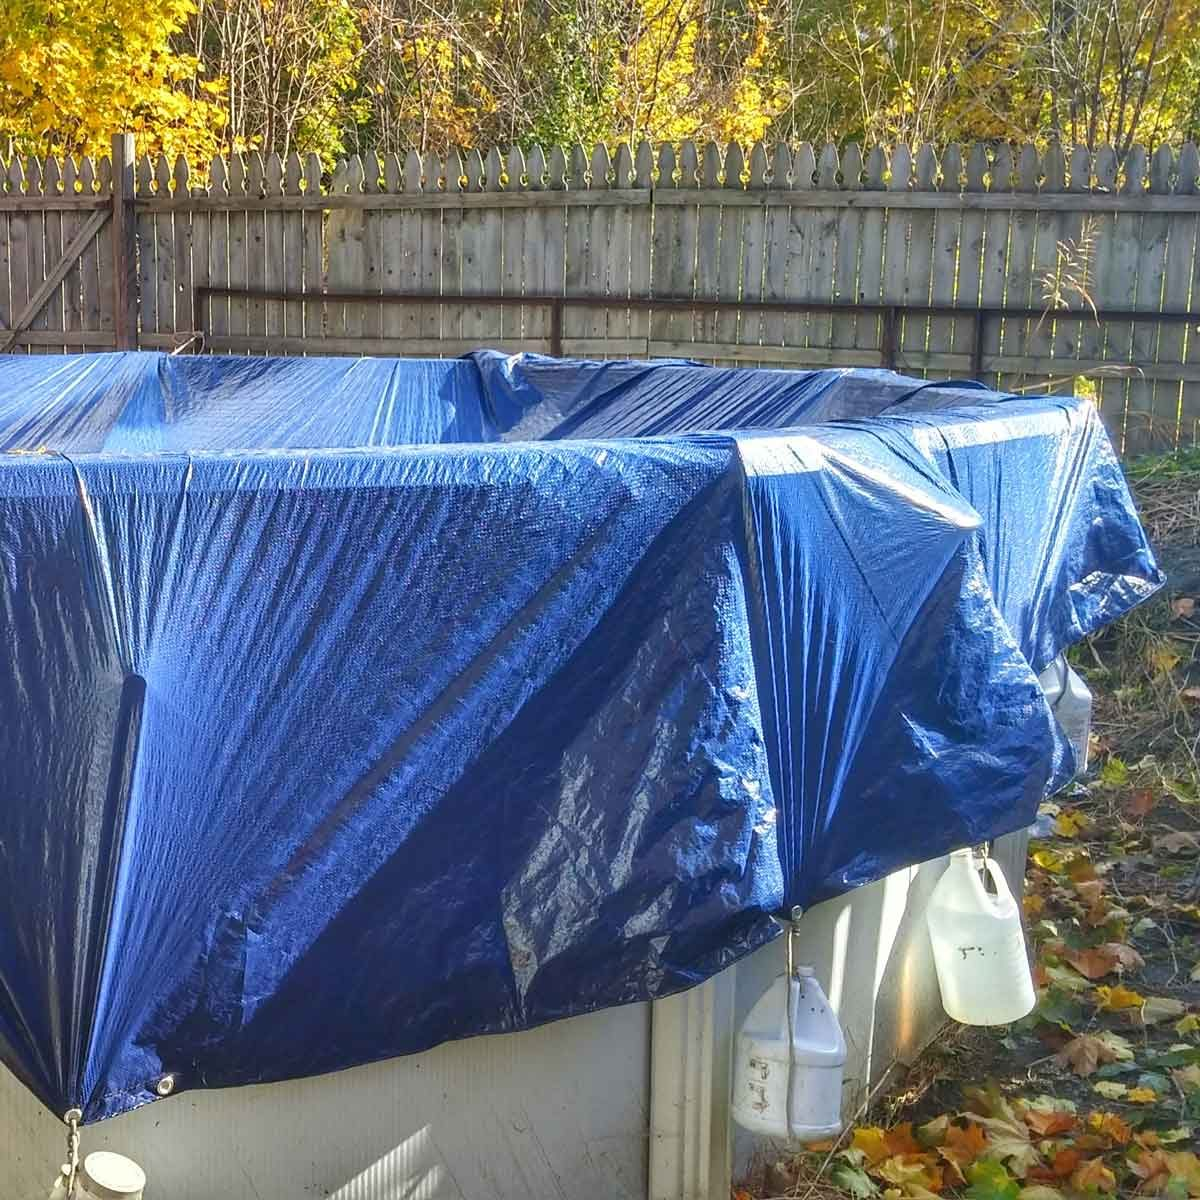 Above ground pool ready for winter